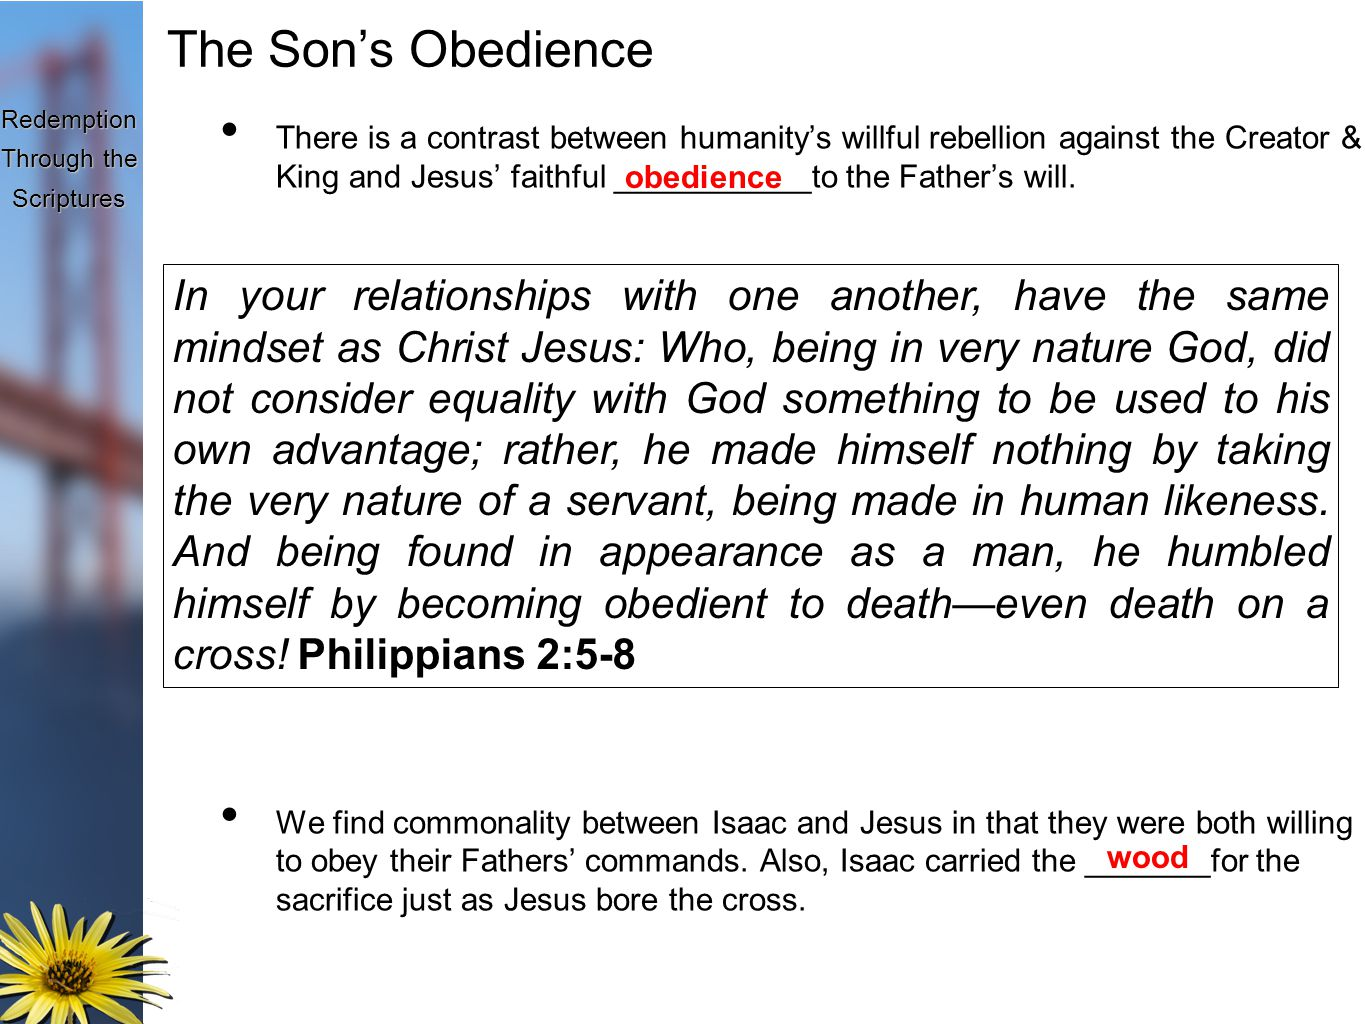 Redemption Through the Scriptures The Son's Obedience There is a contrast between humanity's willful rebellion against the Creator & King and Jesus' faithful ___________to the Father's will.